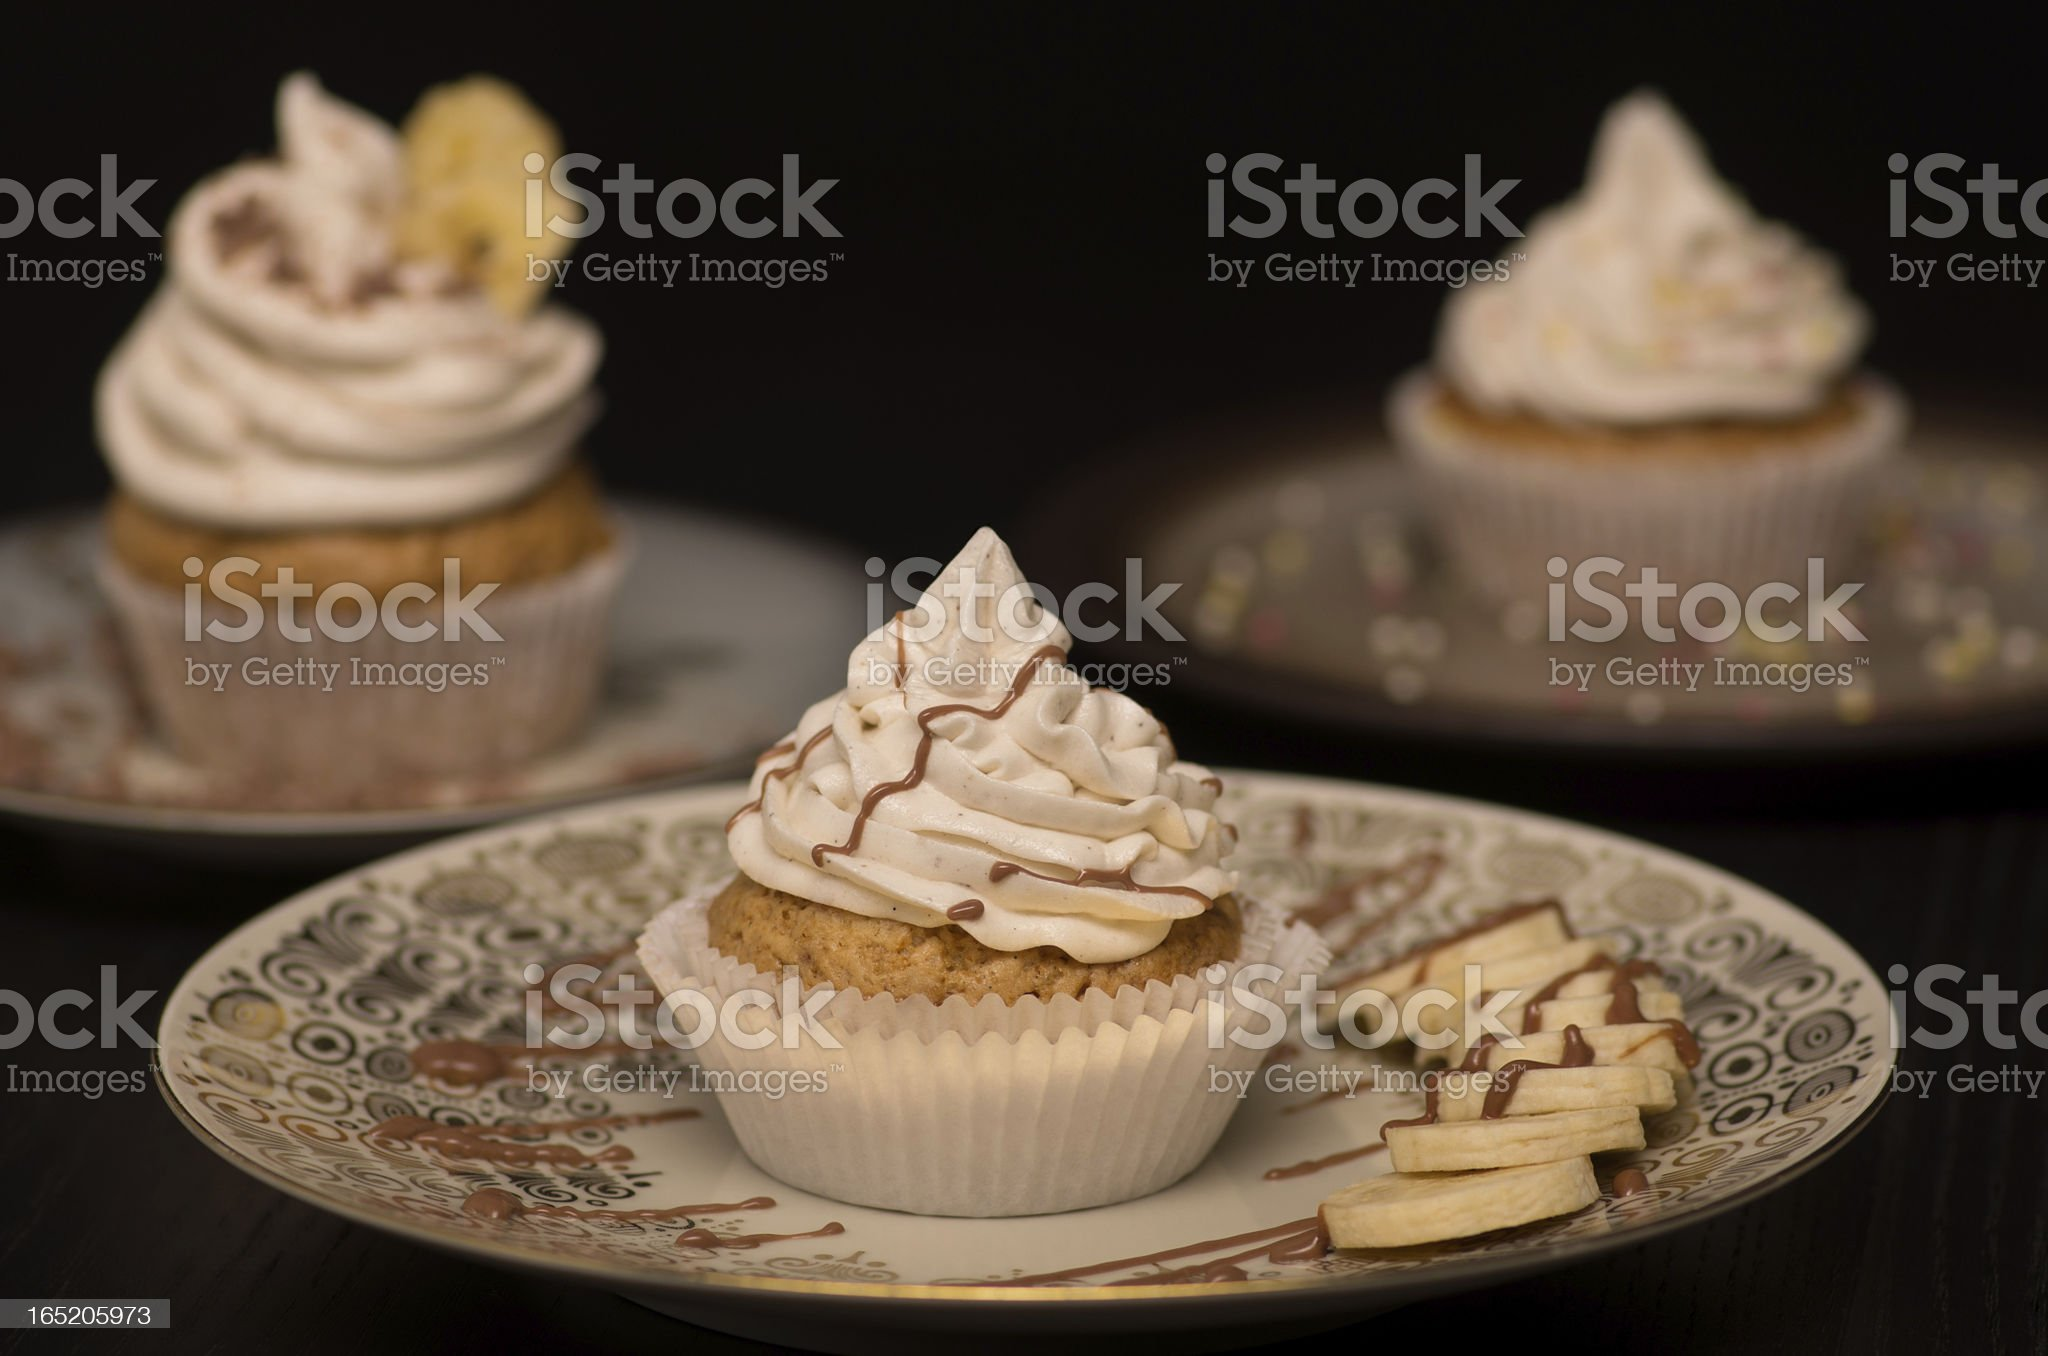 Vegan Cupcakes with different toppings. royalty-free stock photo